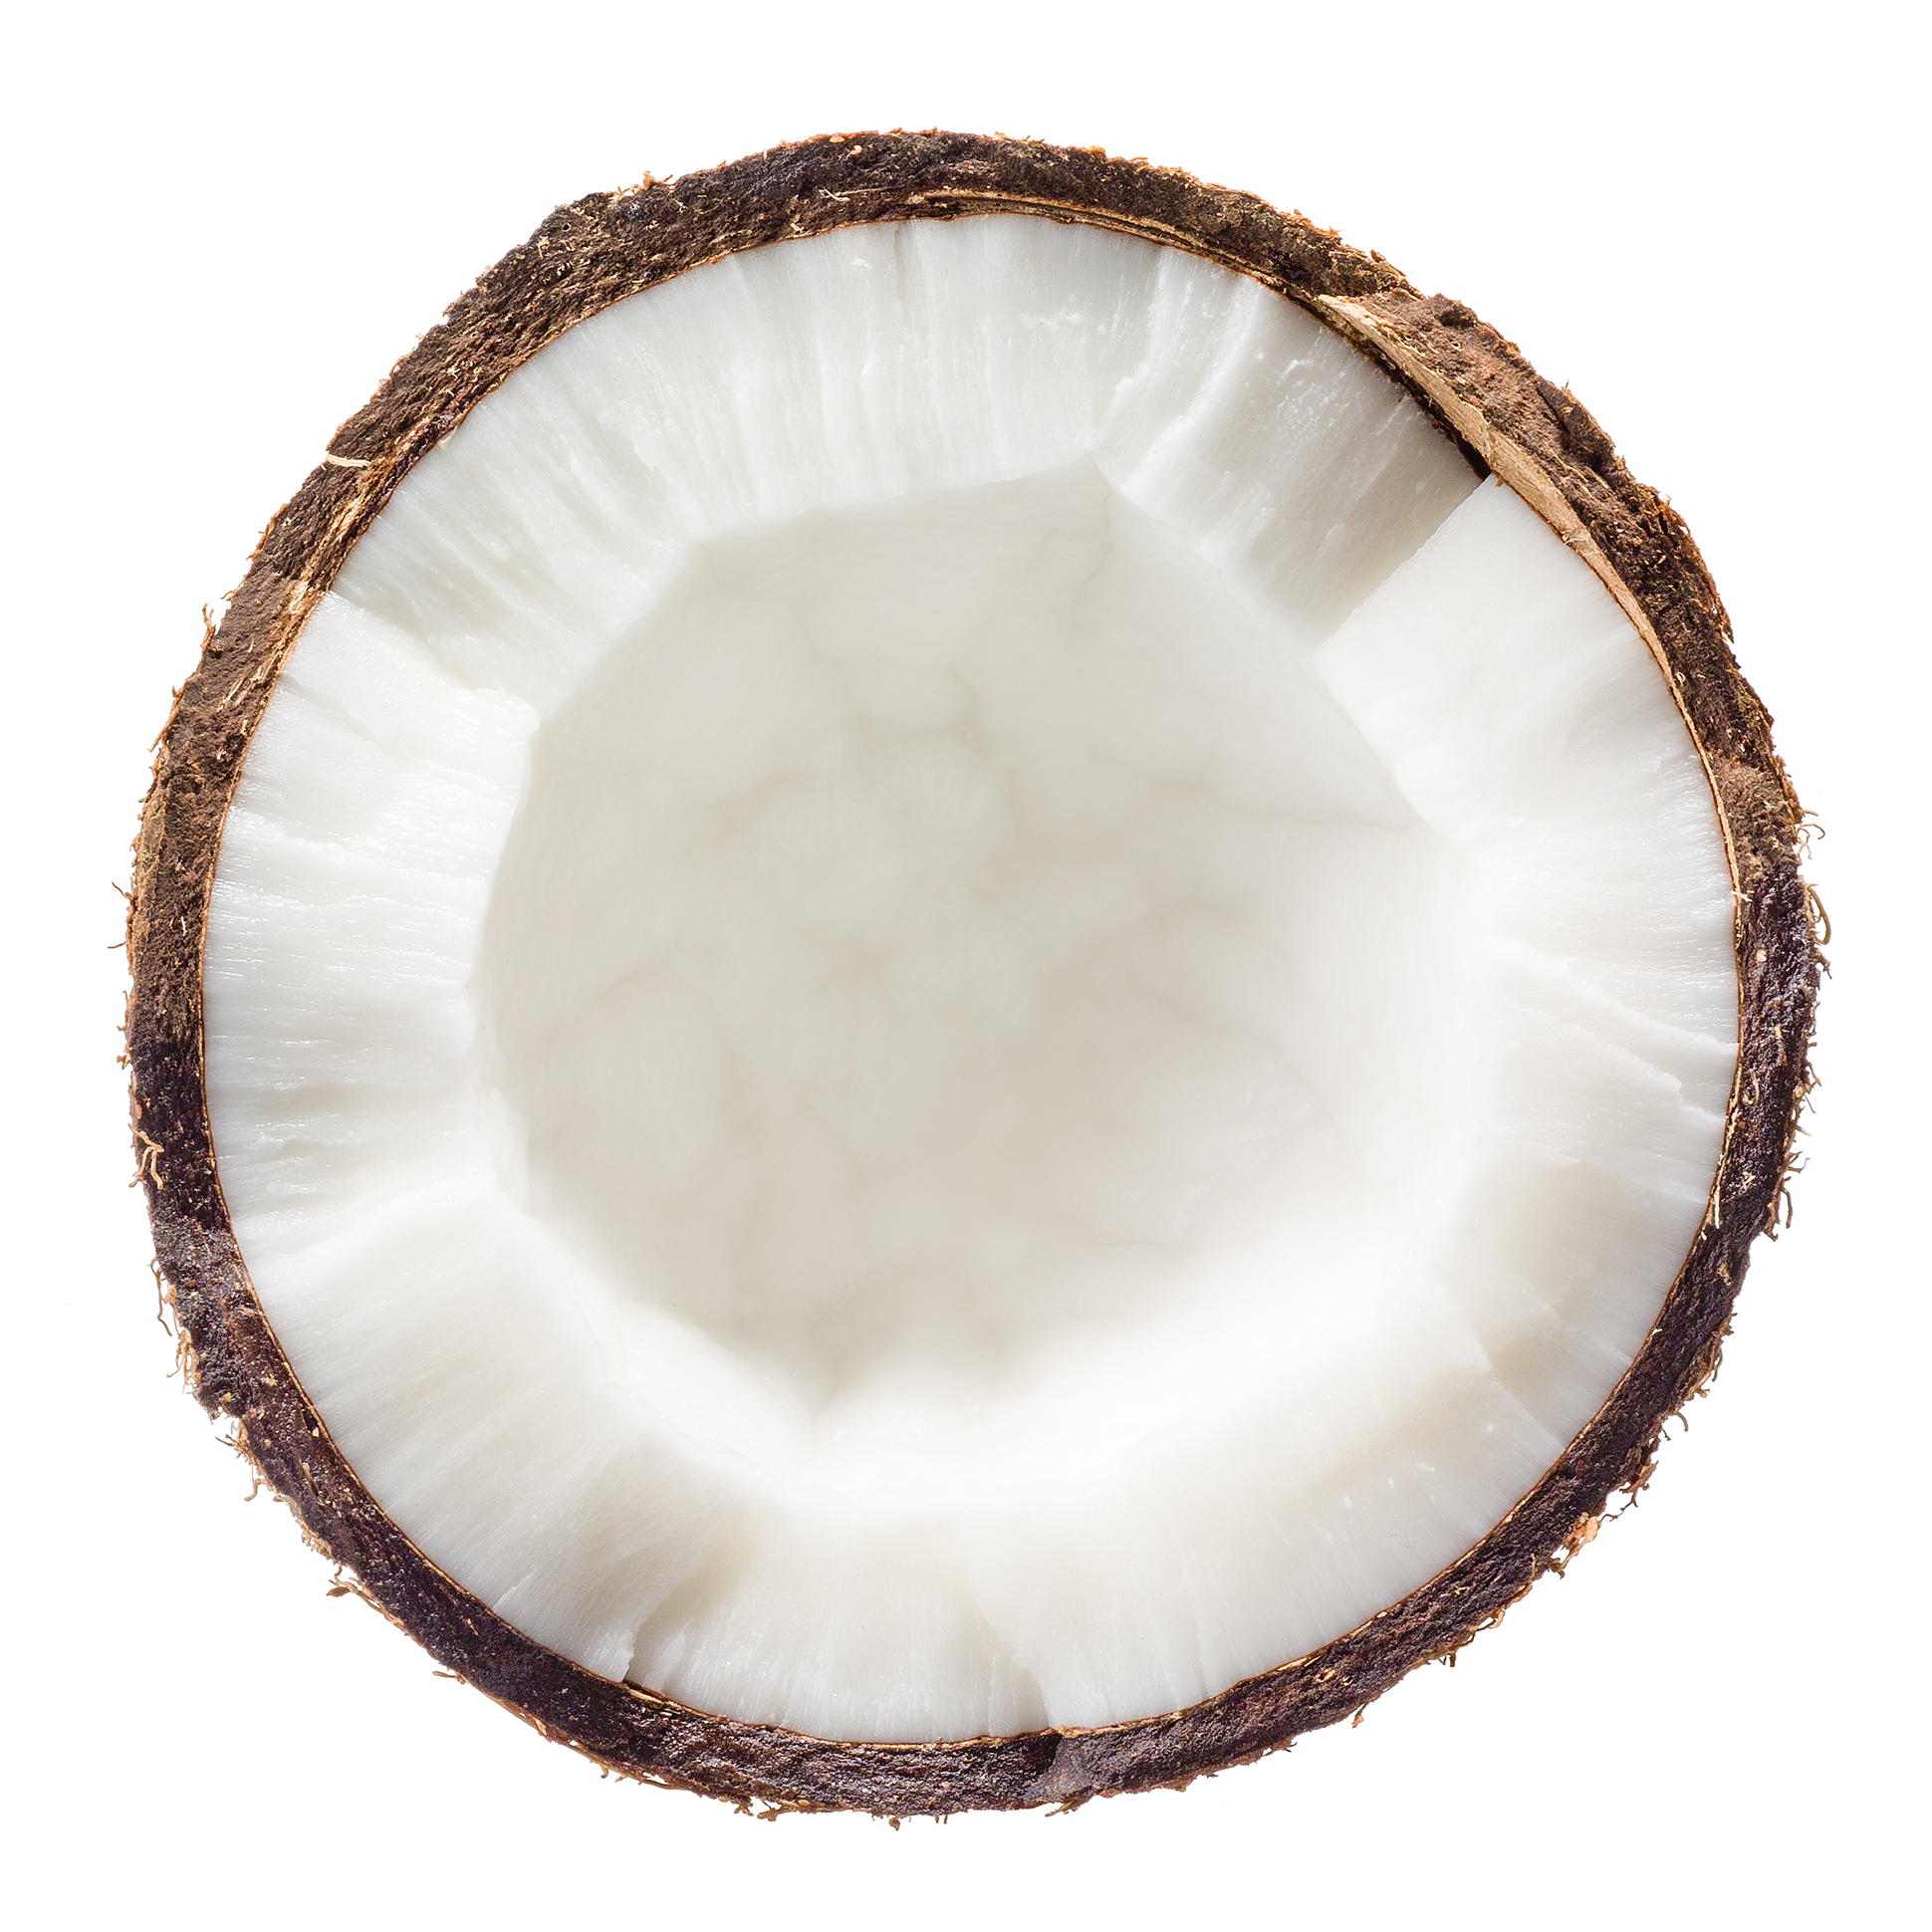 Coconut Flesh